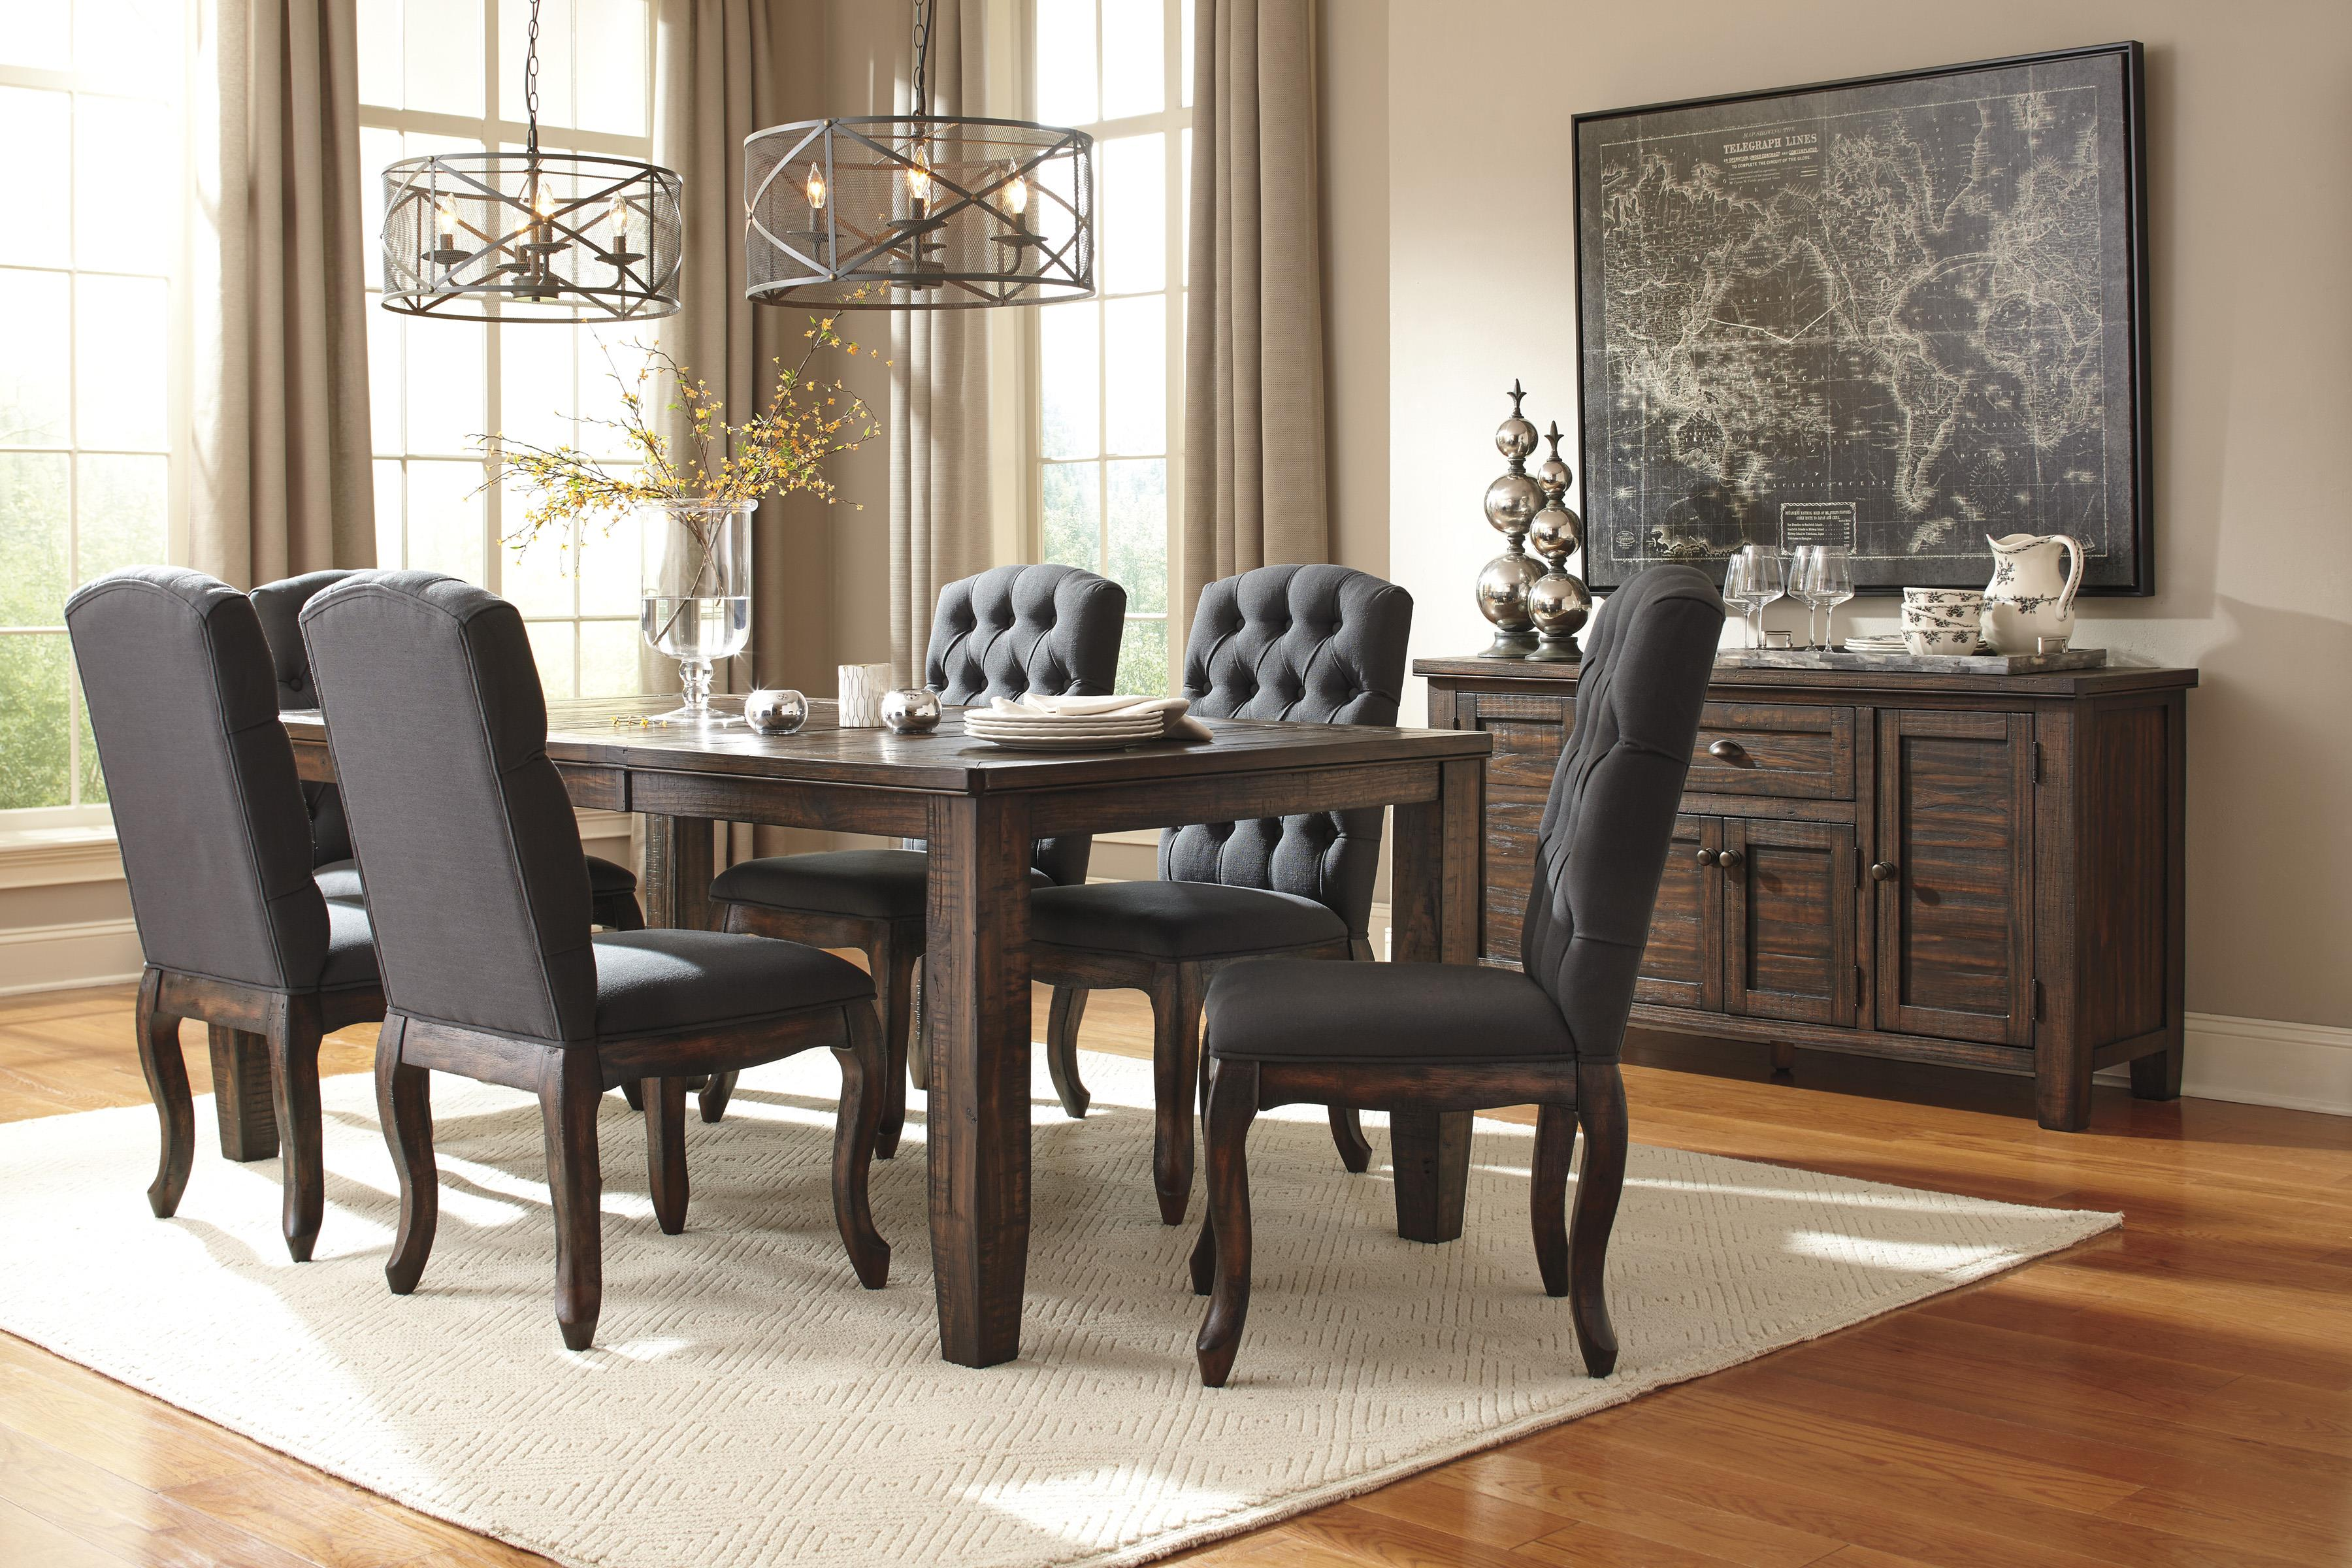 7 piece rectangular dining table set - Dining Table With Chairs